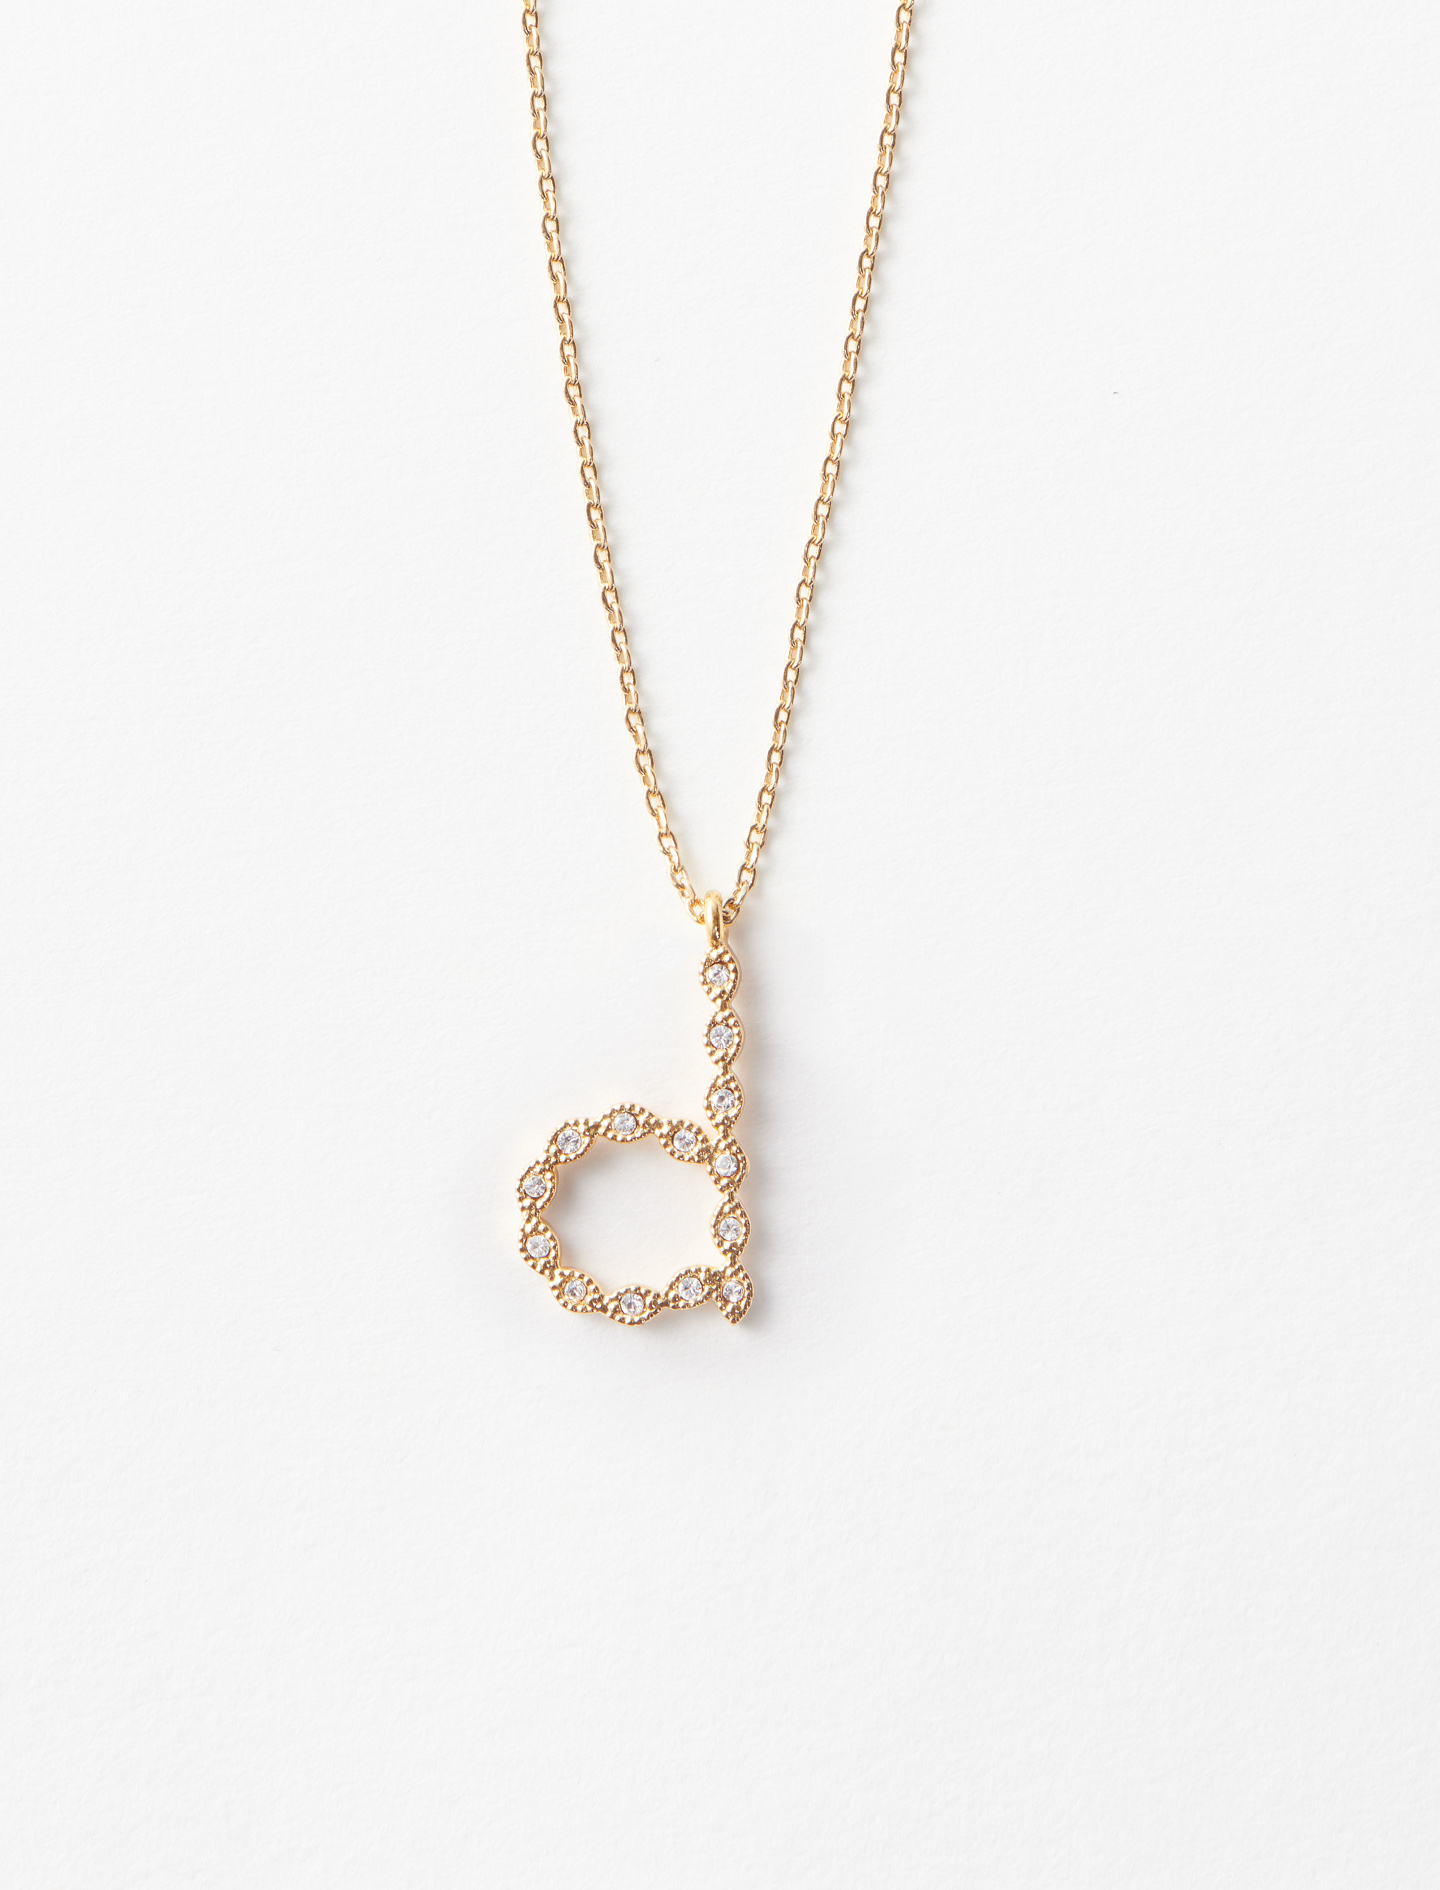 Rhinestone D necklace - Gold